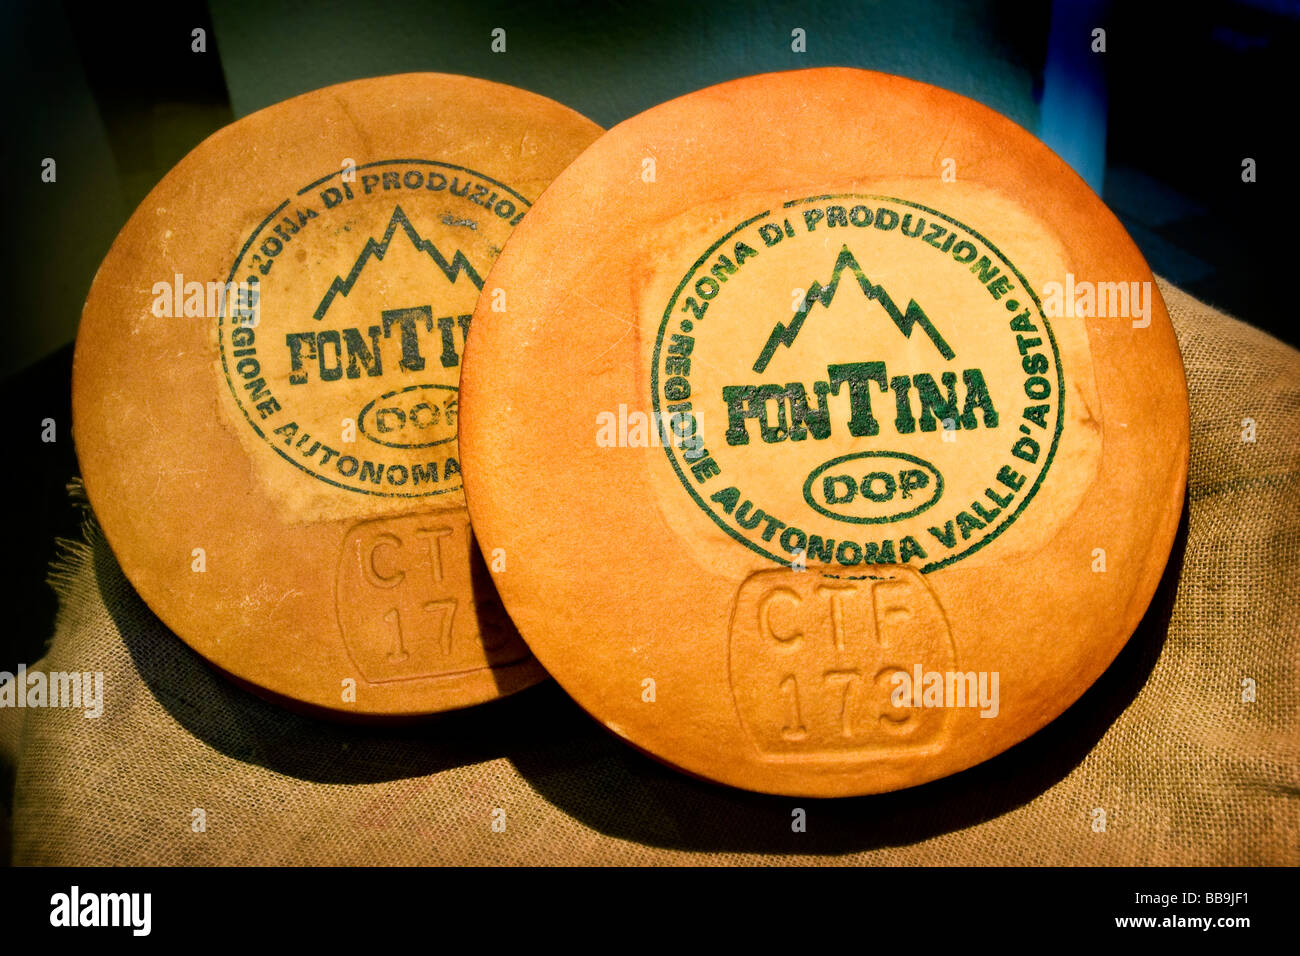 Cheese Fontina Valpelline Italy Stock Photo